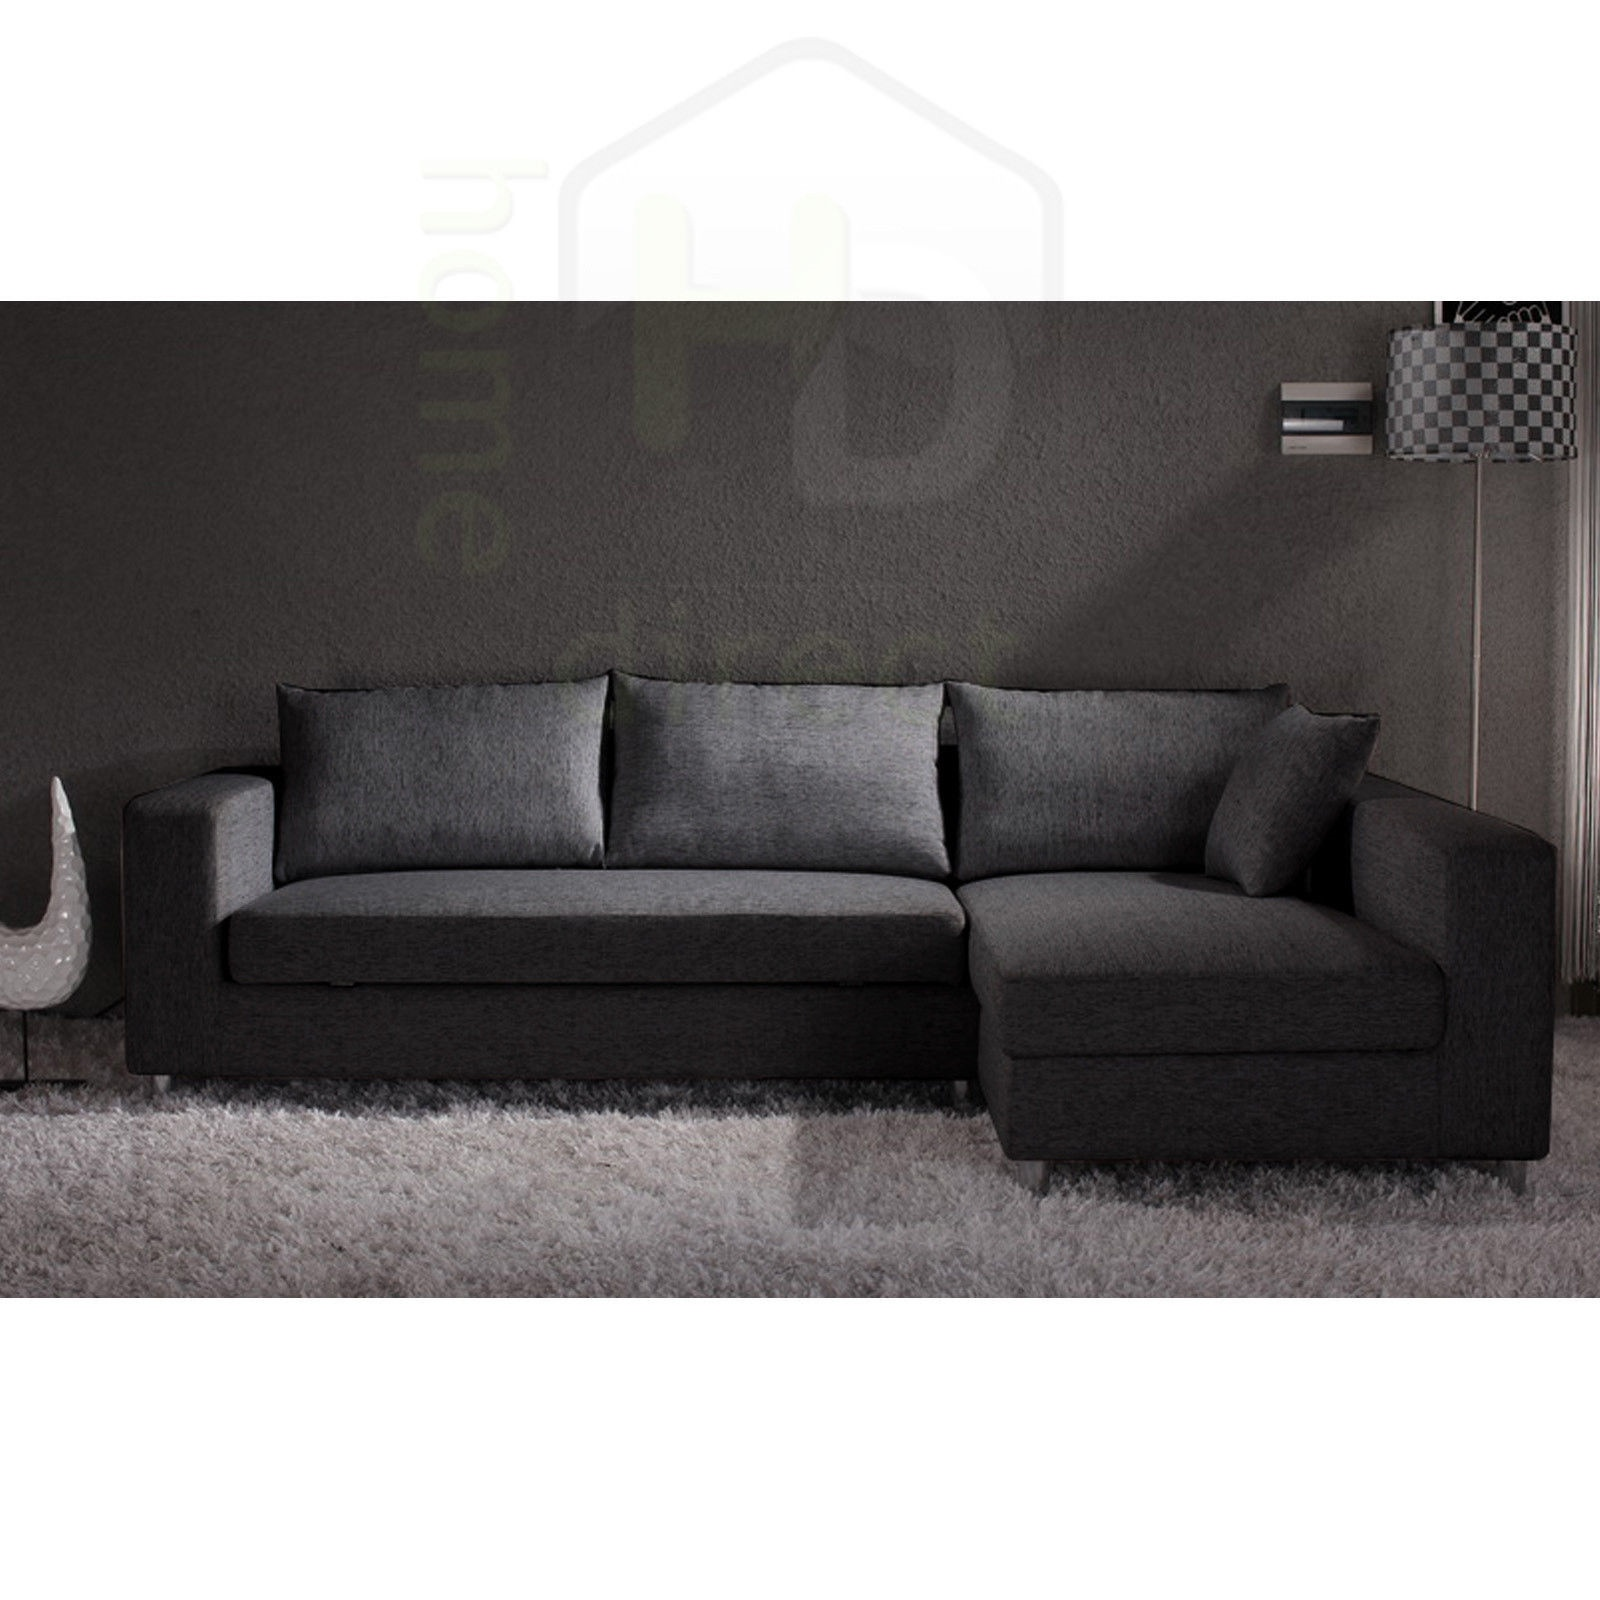 Sofa Bed Ebay Sydney: KYRA Modern Retro Fabric Sofa Bed Couch Chaise Lounge